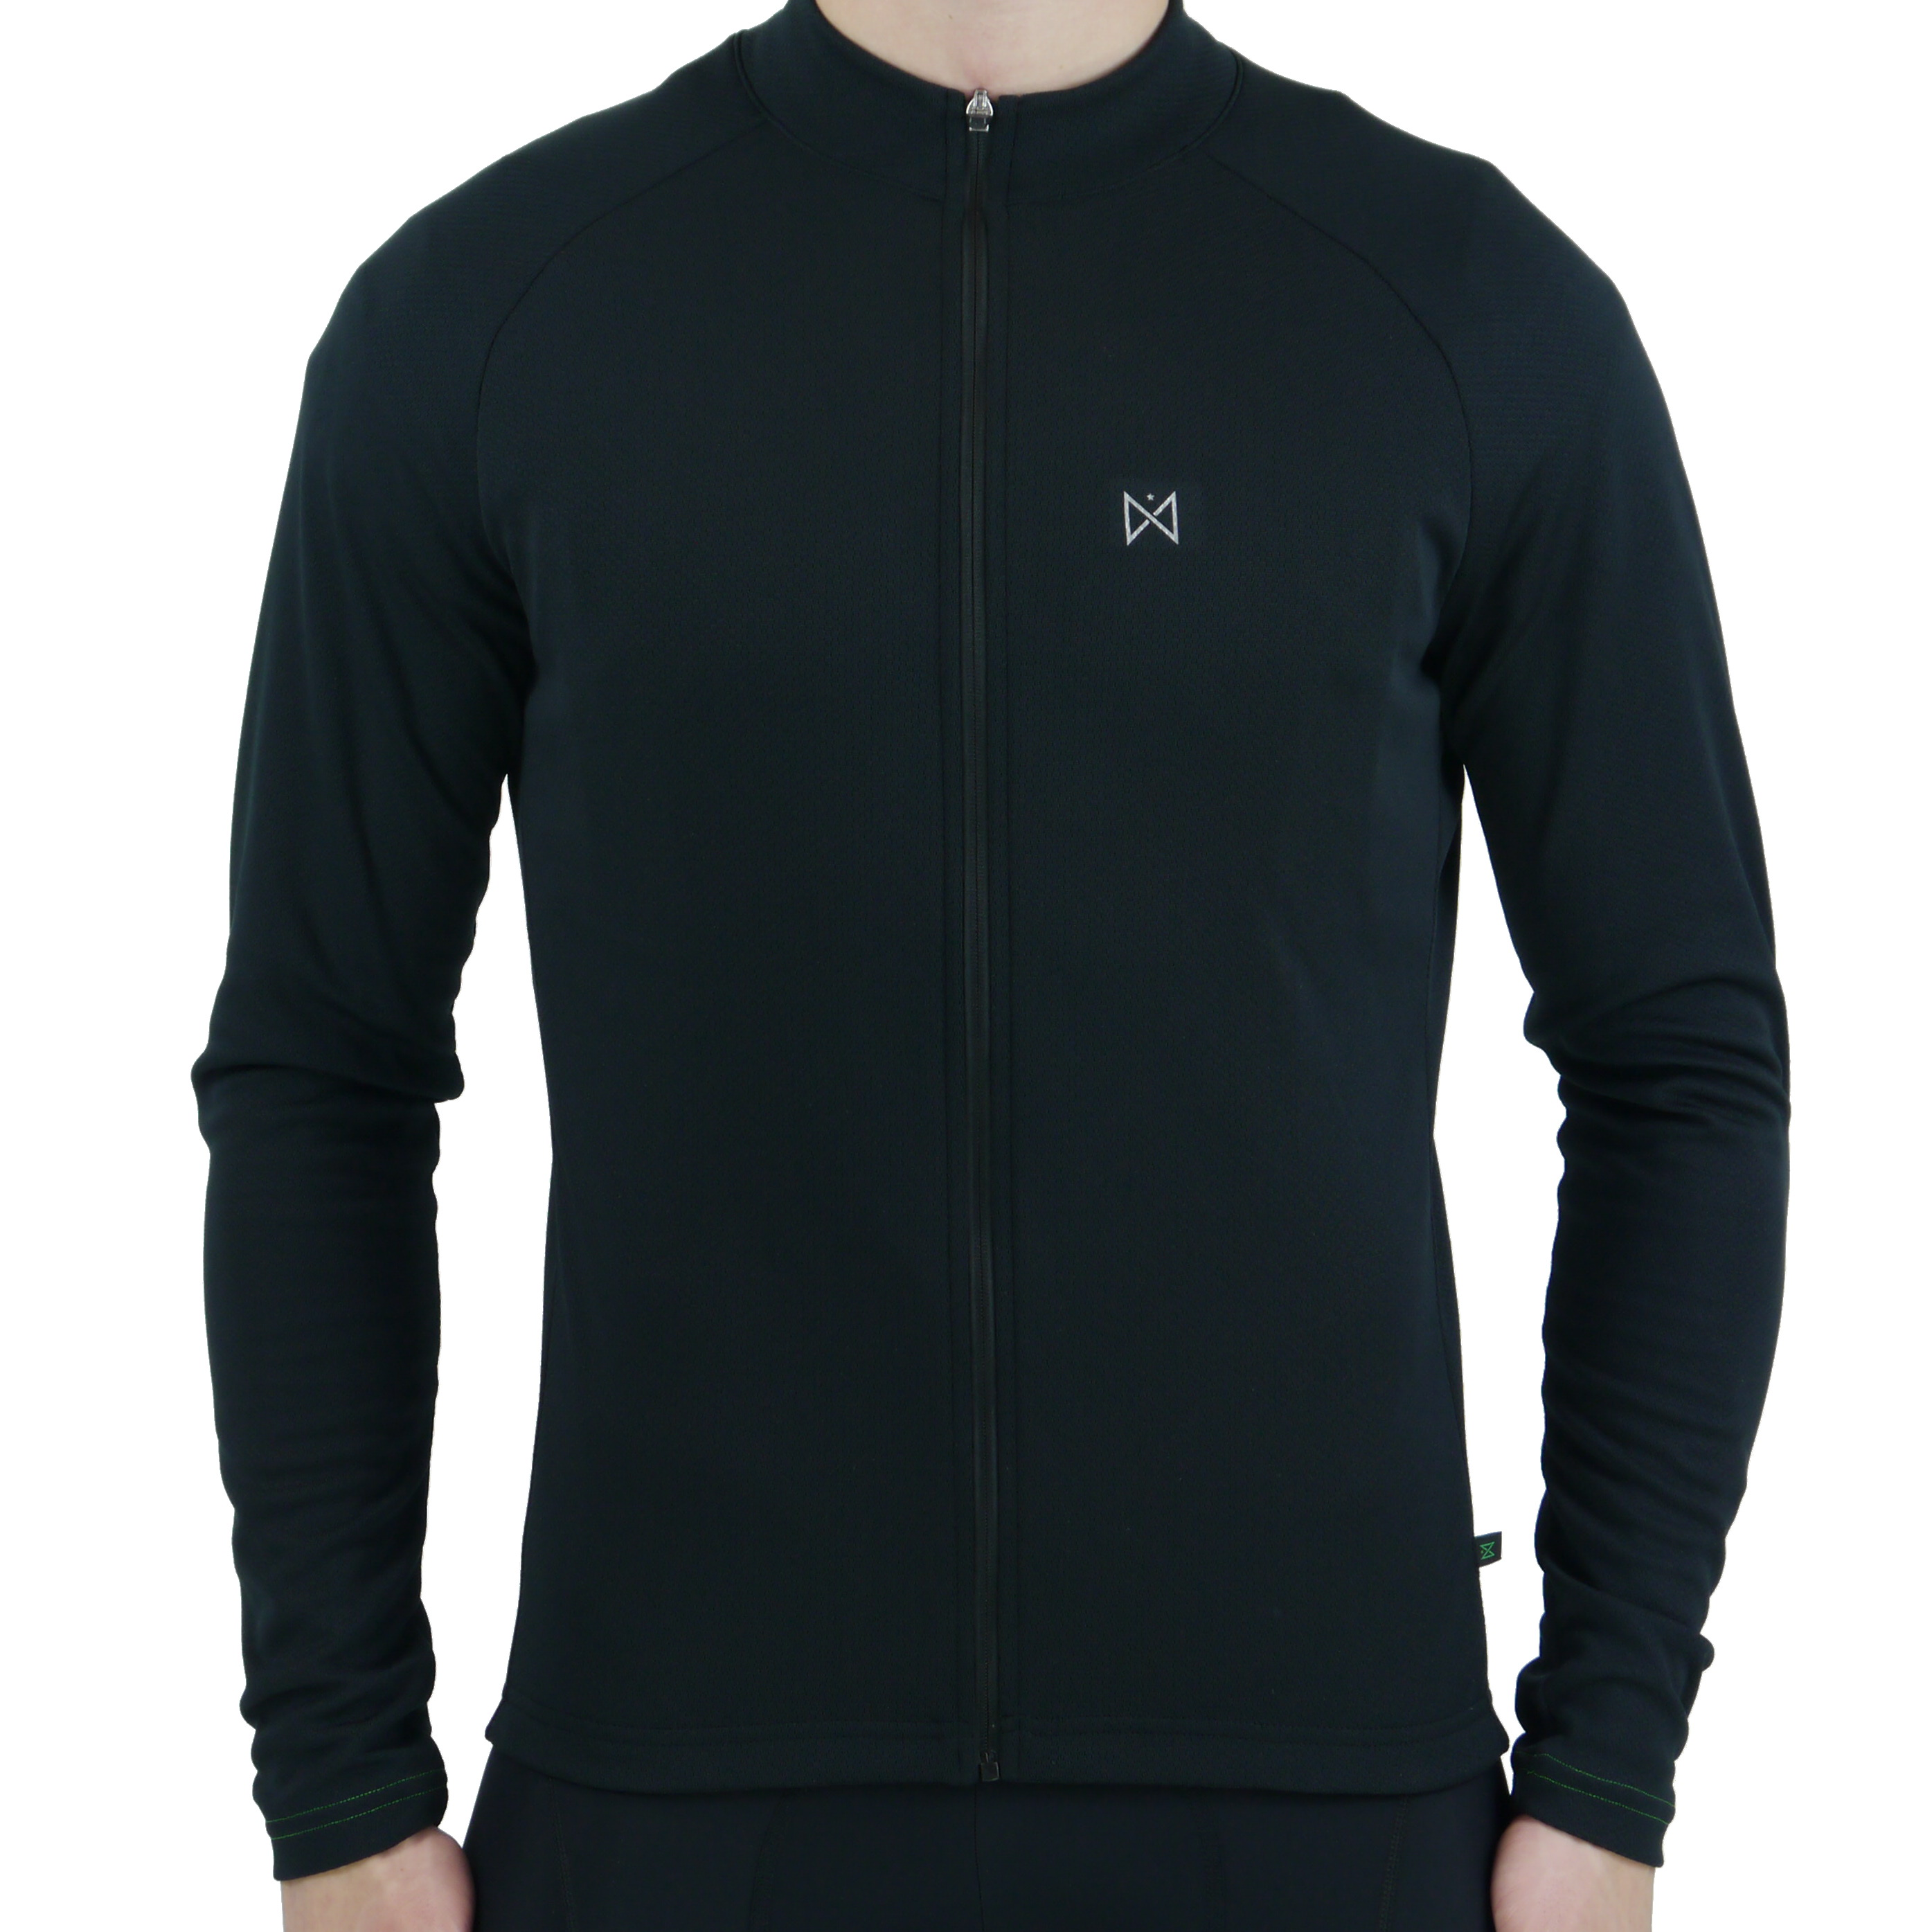 Merlin Wear Core Long Sleeve Cycling Jersey